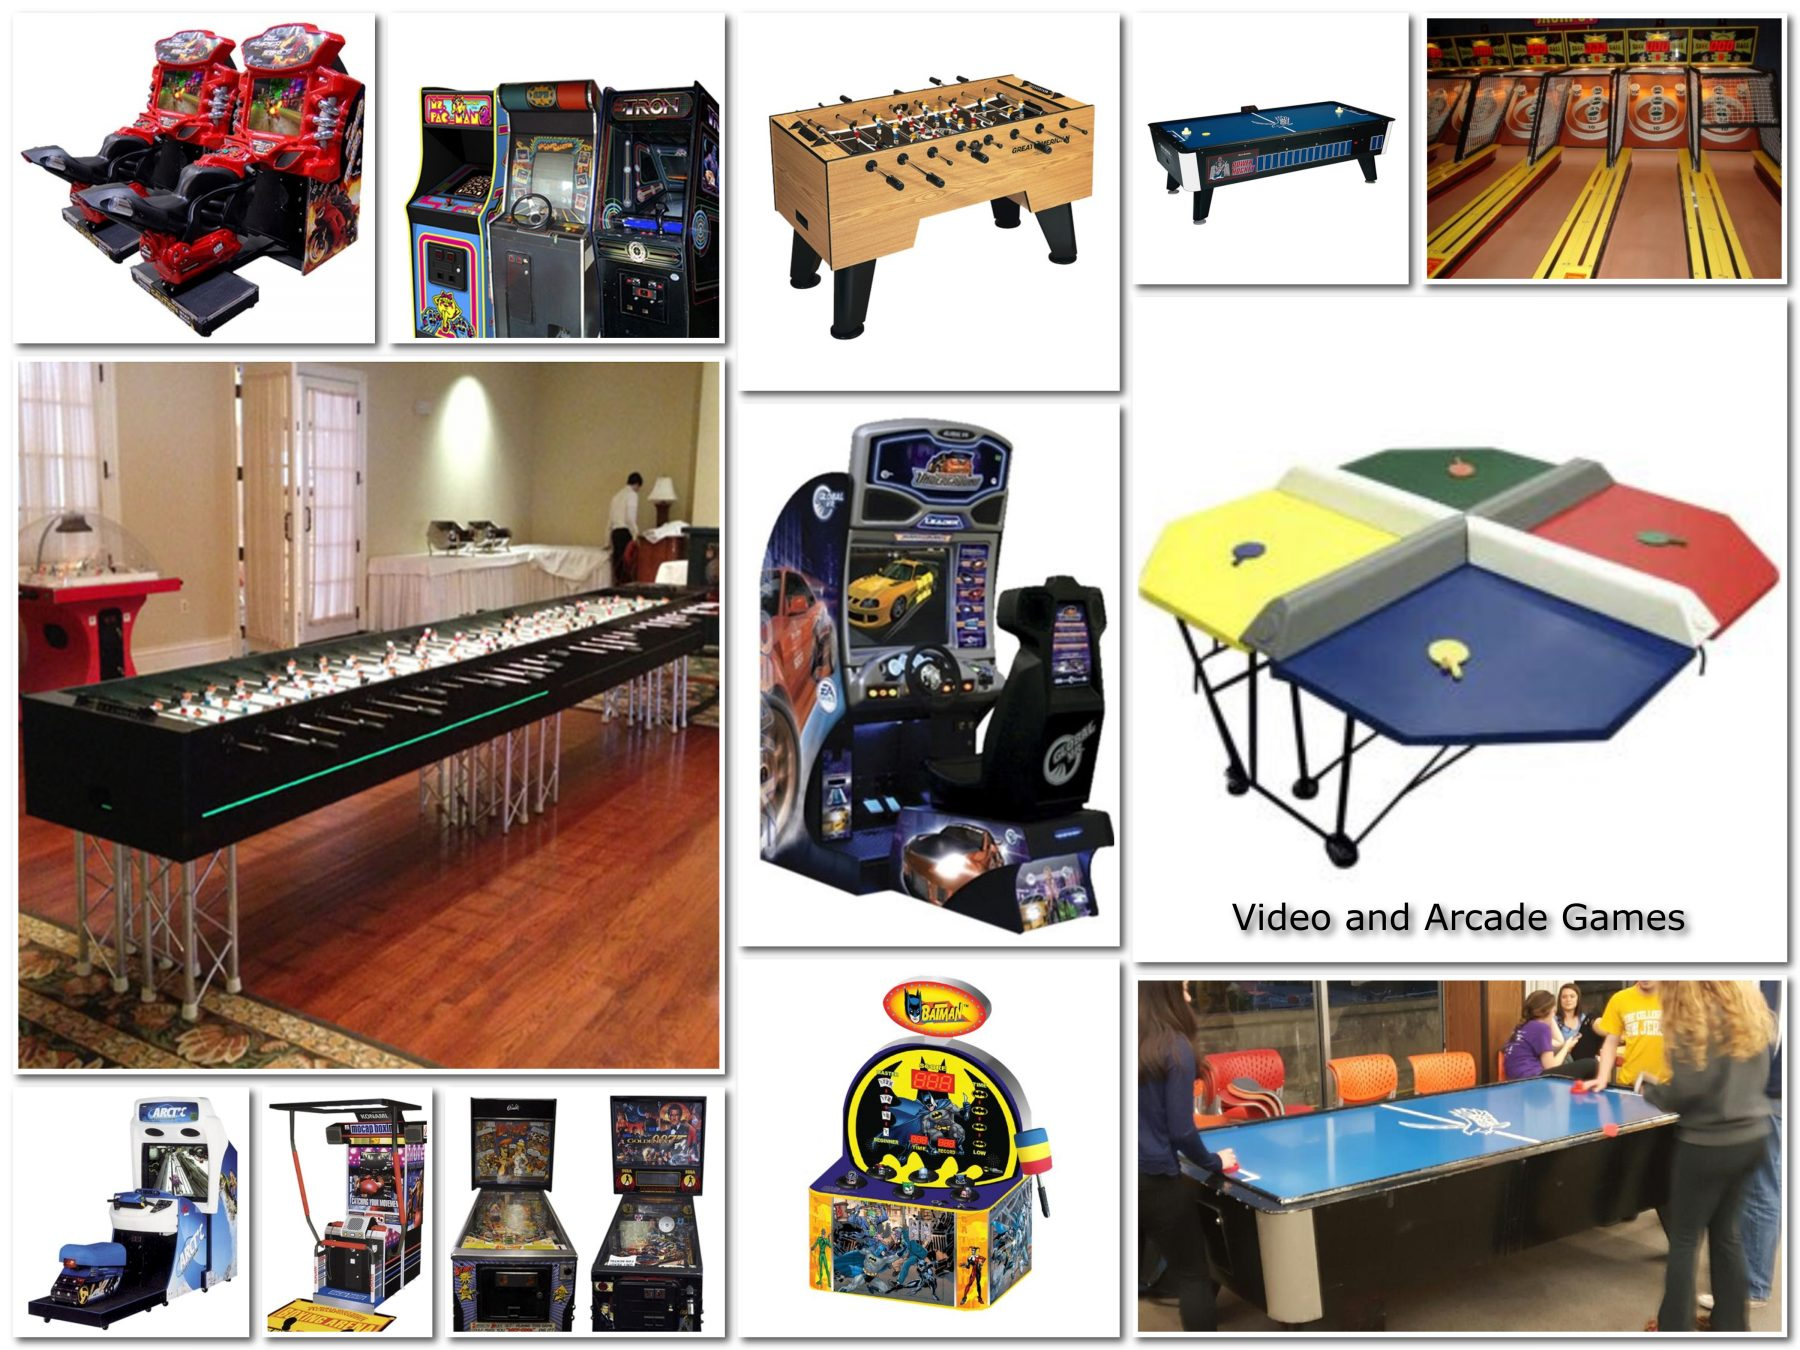 Video and Arcade Games